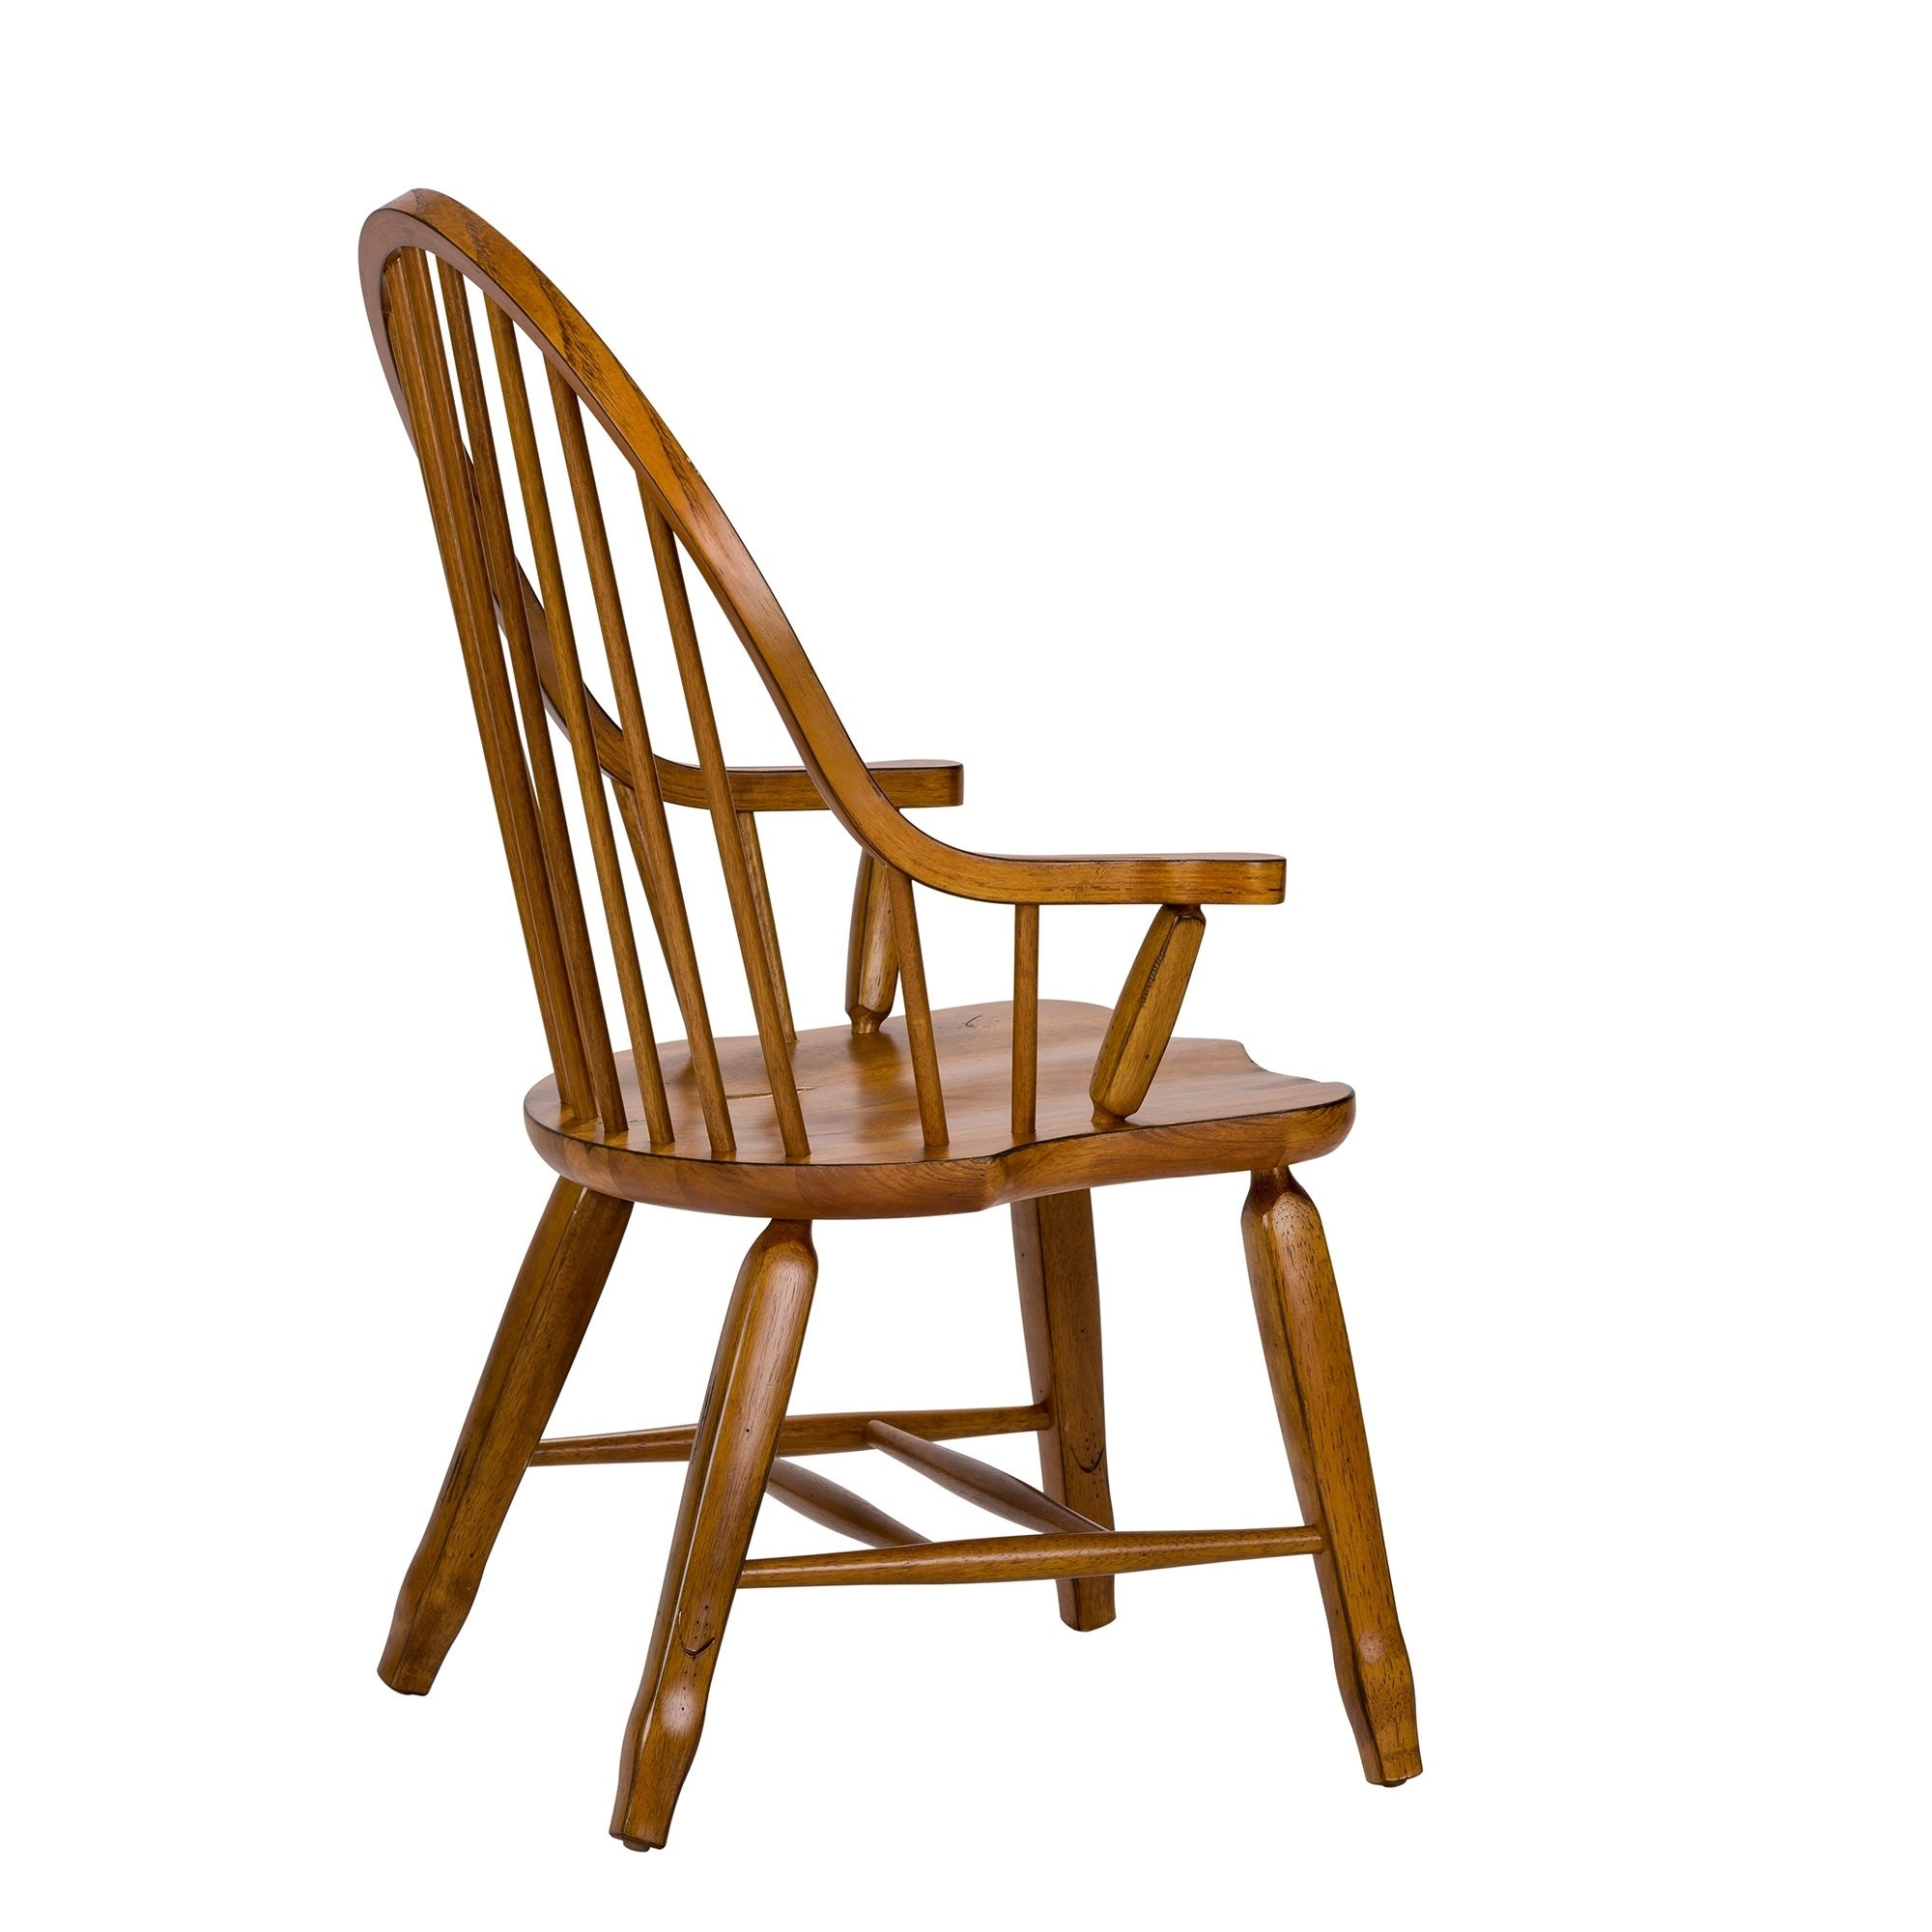 Shop Treasures Rustic Oak Bow Back Arm Chair - On Sale - Free Shipping Today - Overstock.com - 10644775  sc 1 st  Overstock.com & Shop Treasures Rustic Oak Bow Back Arm Chair - On Sale - Free ...